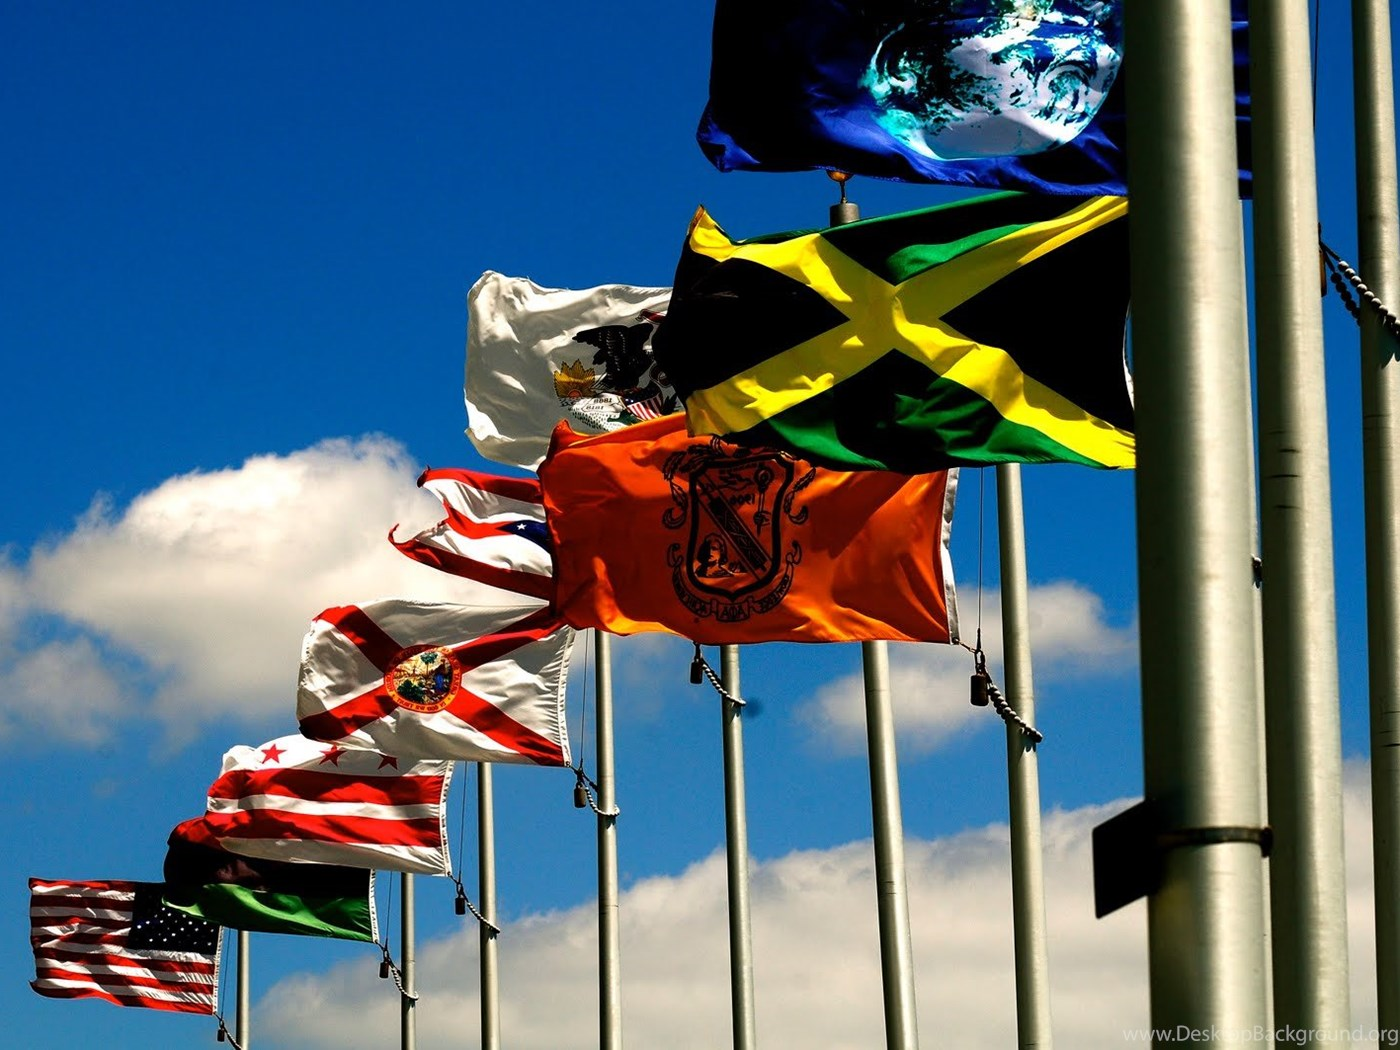 Wallpapers Flags World Labeled Travel Imagesci 1600x1063 Desktop